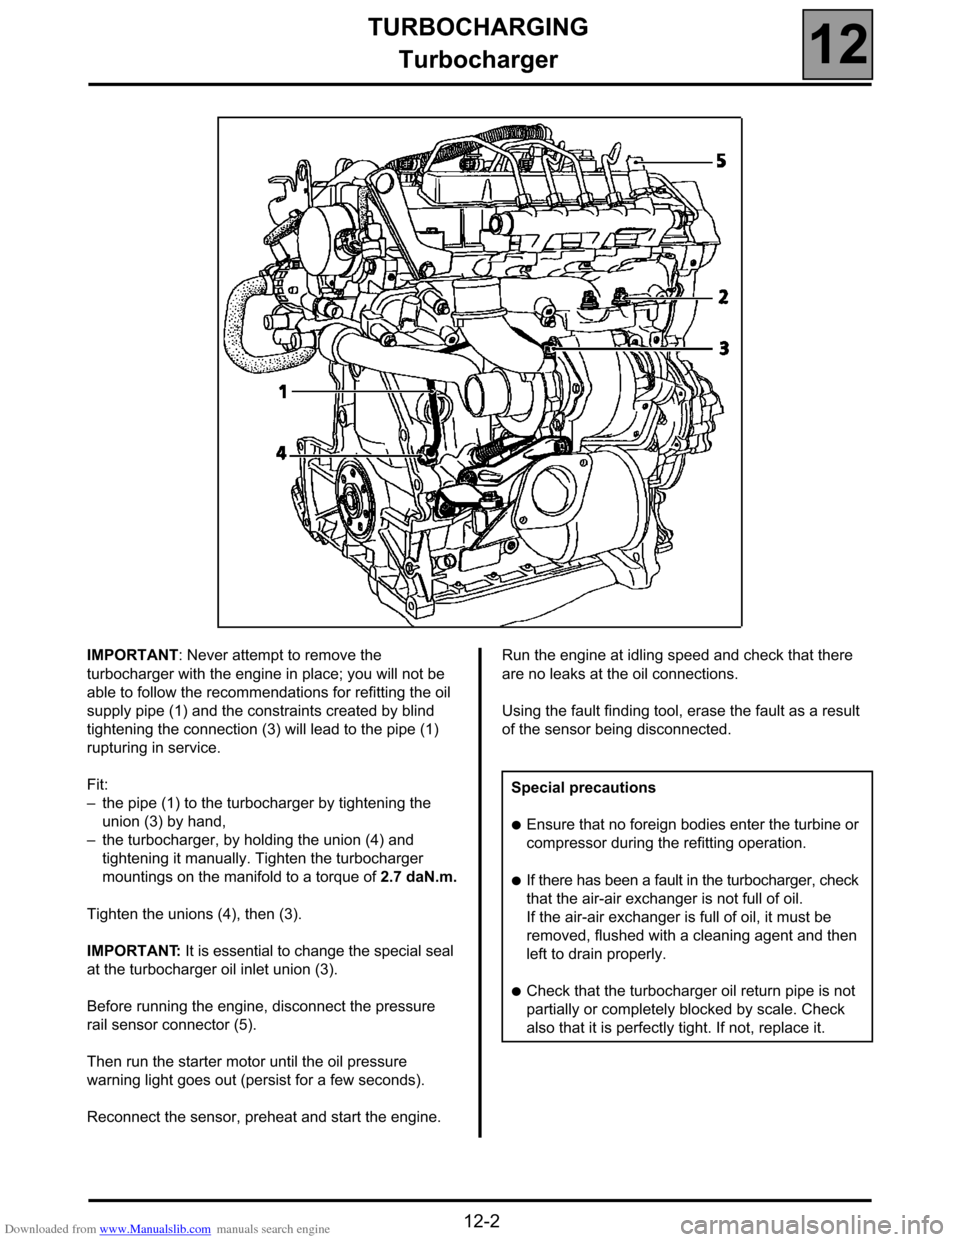 RENAULT ESPACE 2000 J66 / 3.G Technical Note 3426A Workshop Manual, Page 24